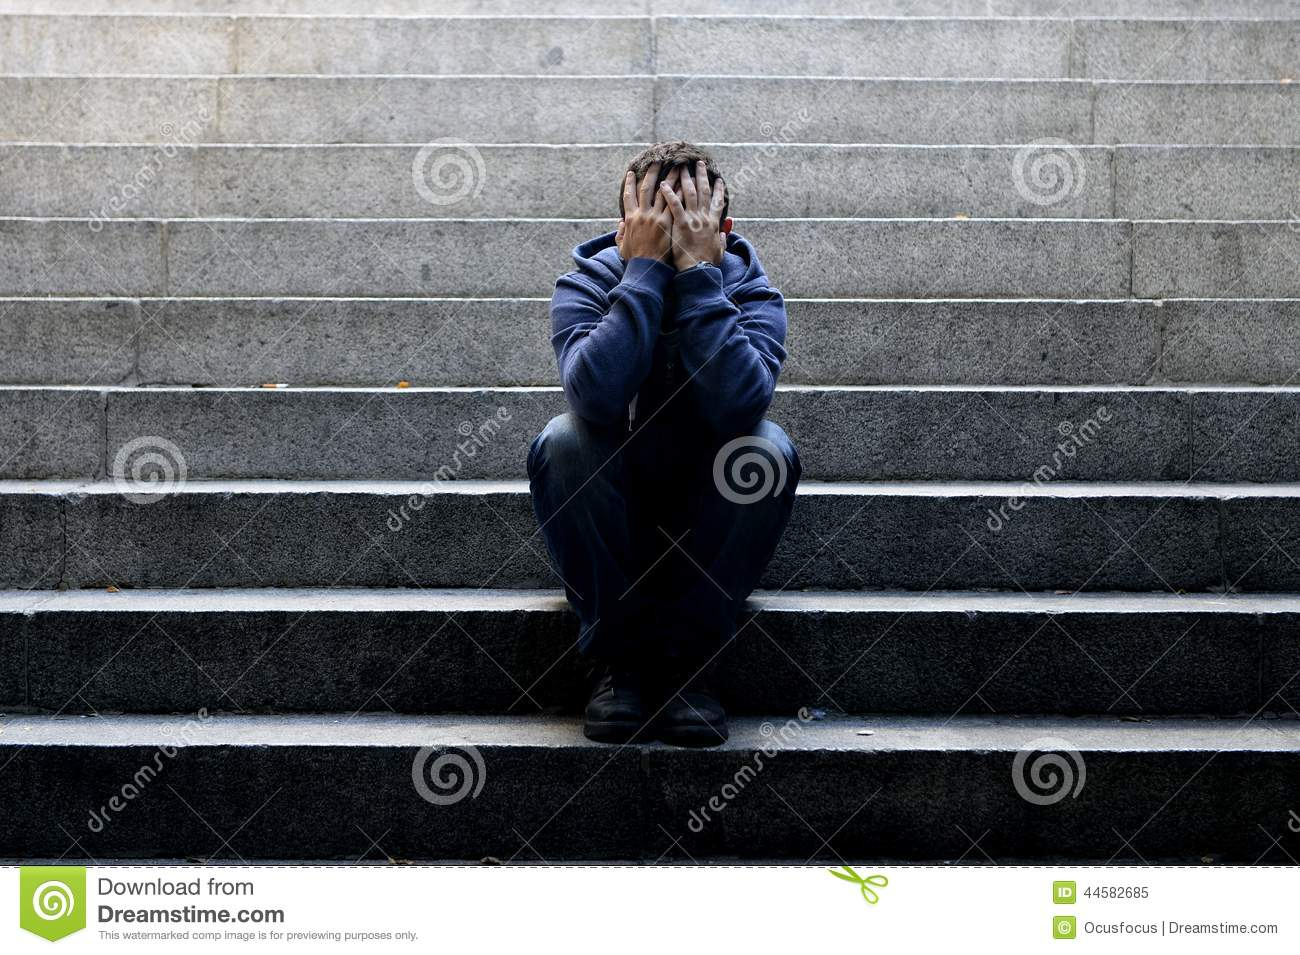 Young homeless man lost job sitting in depression on ground street concrete stairs